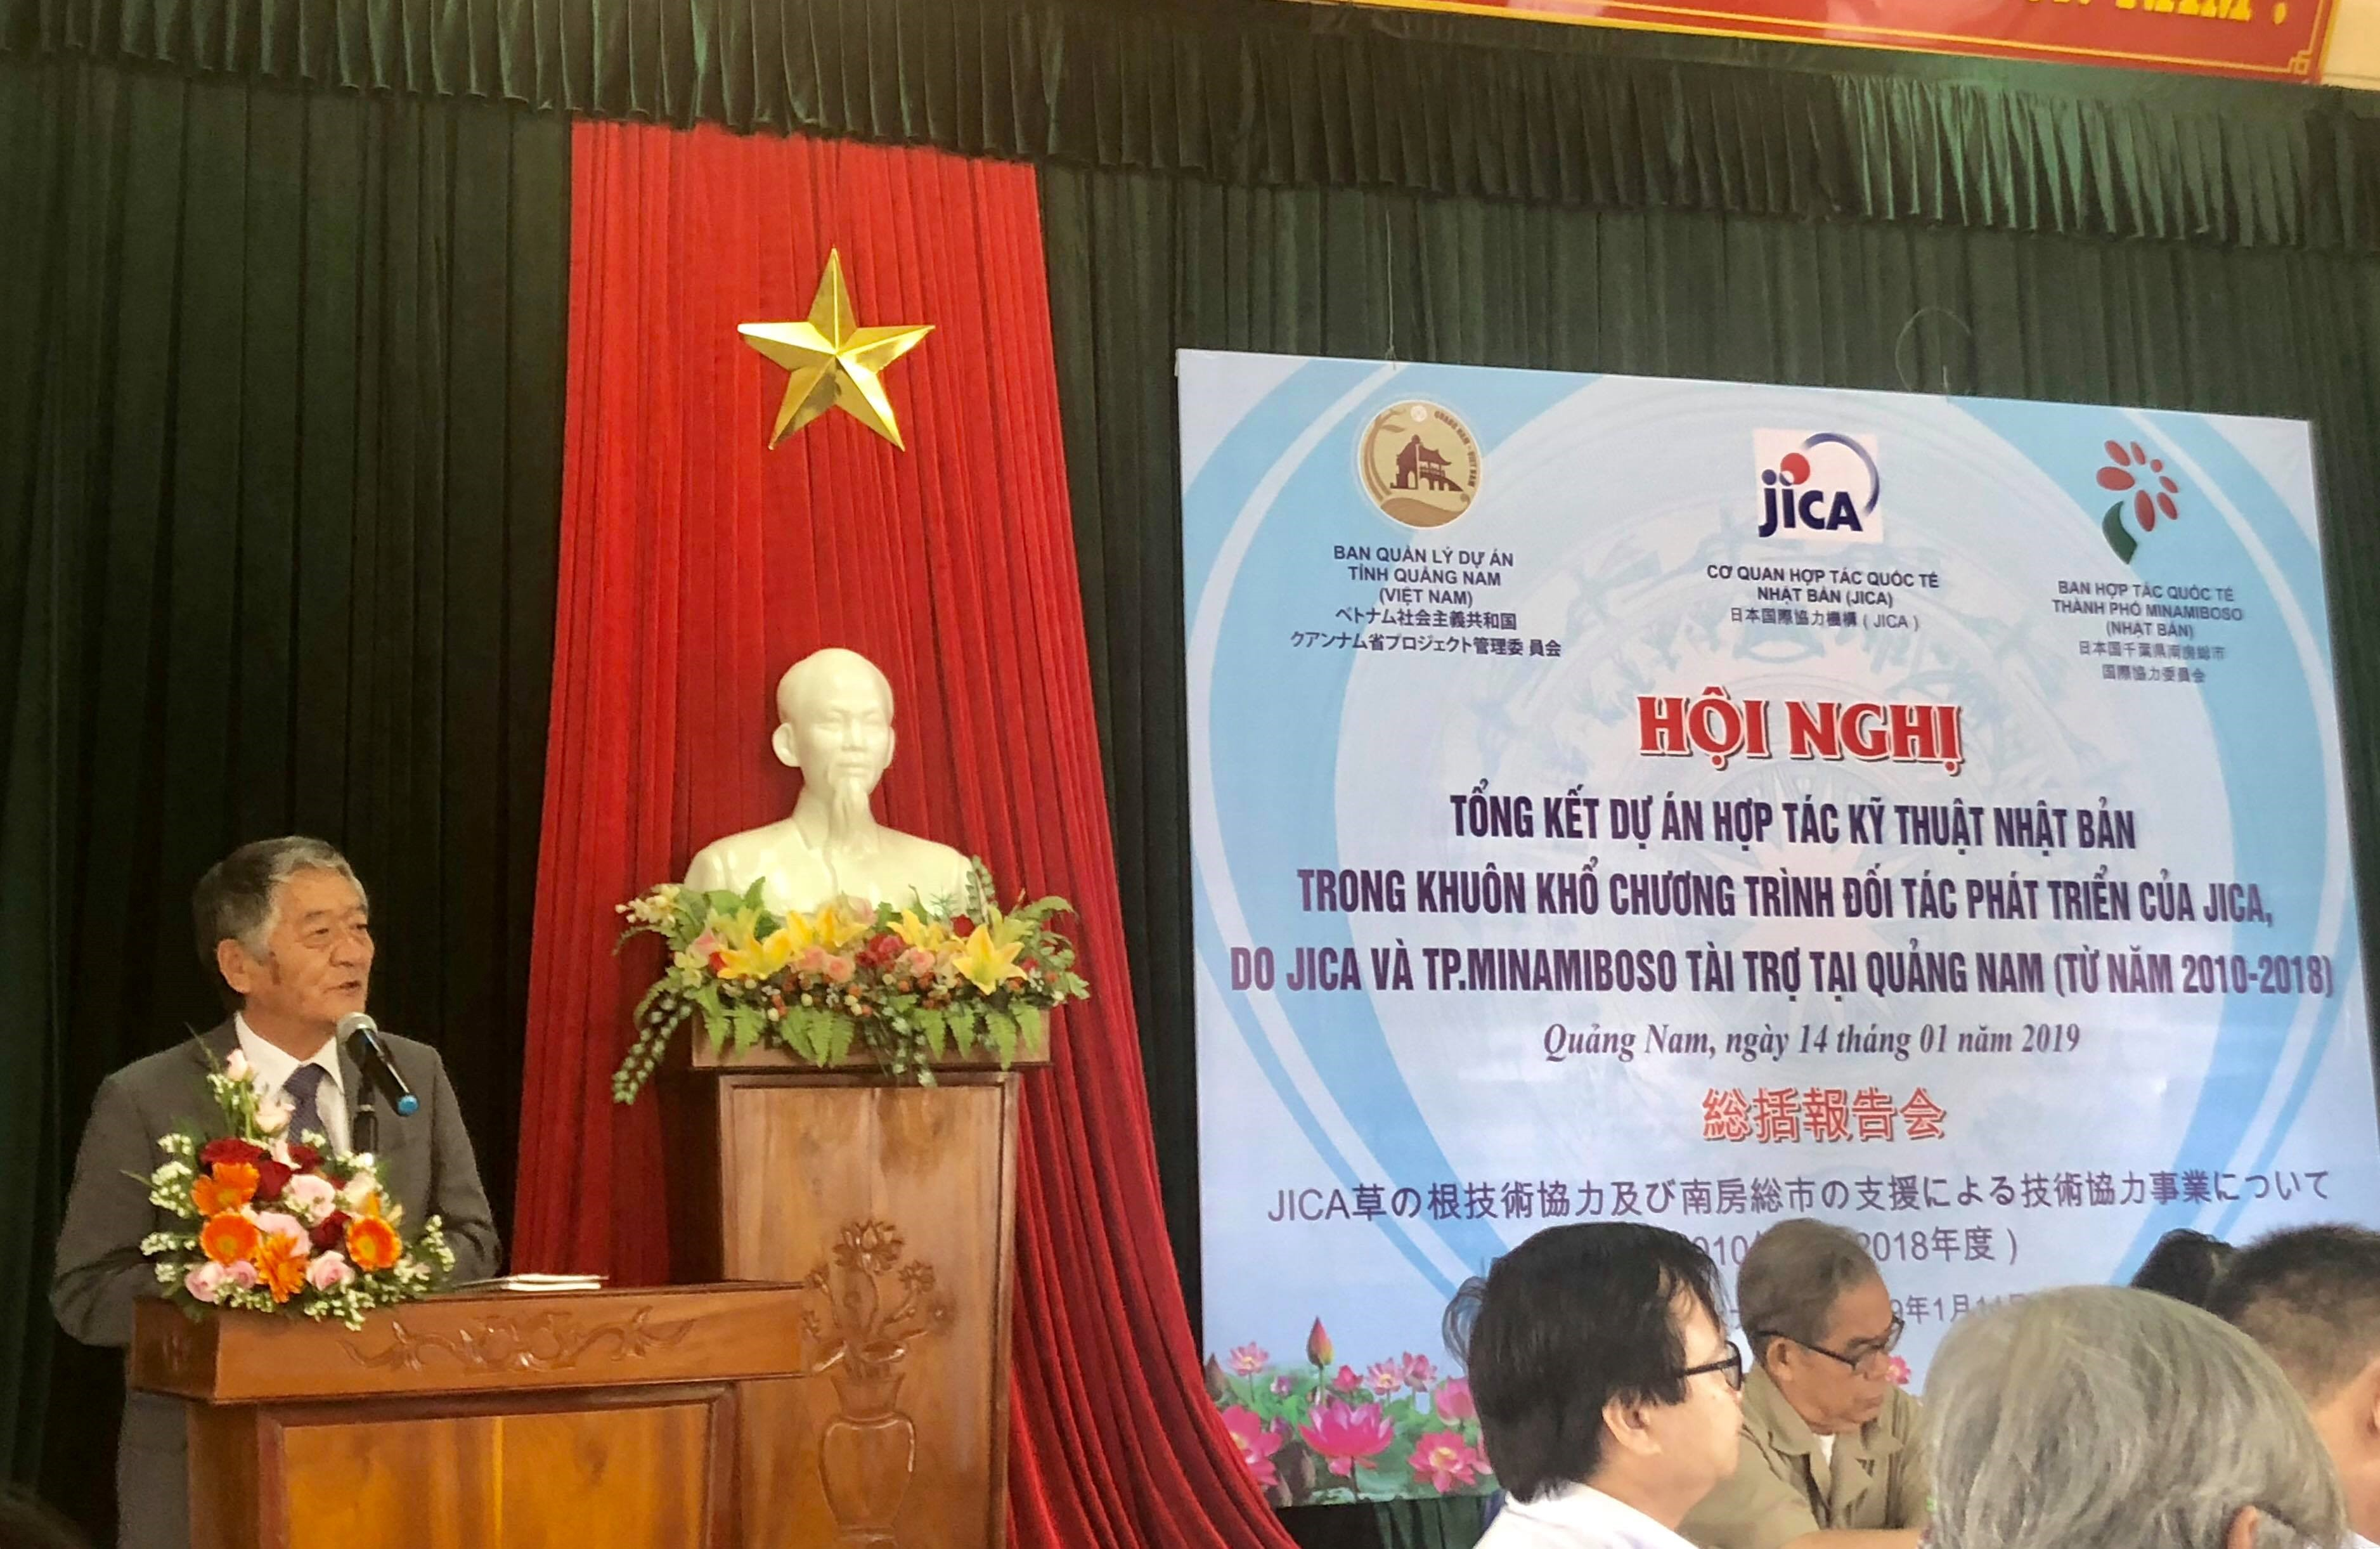 JICA Project Director Fumio Kato gives a speech at the conference.